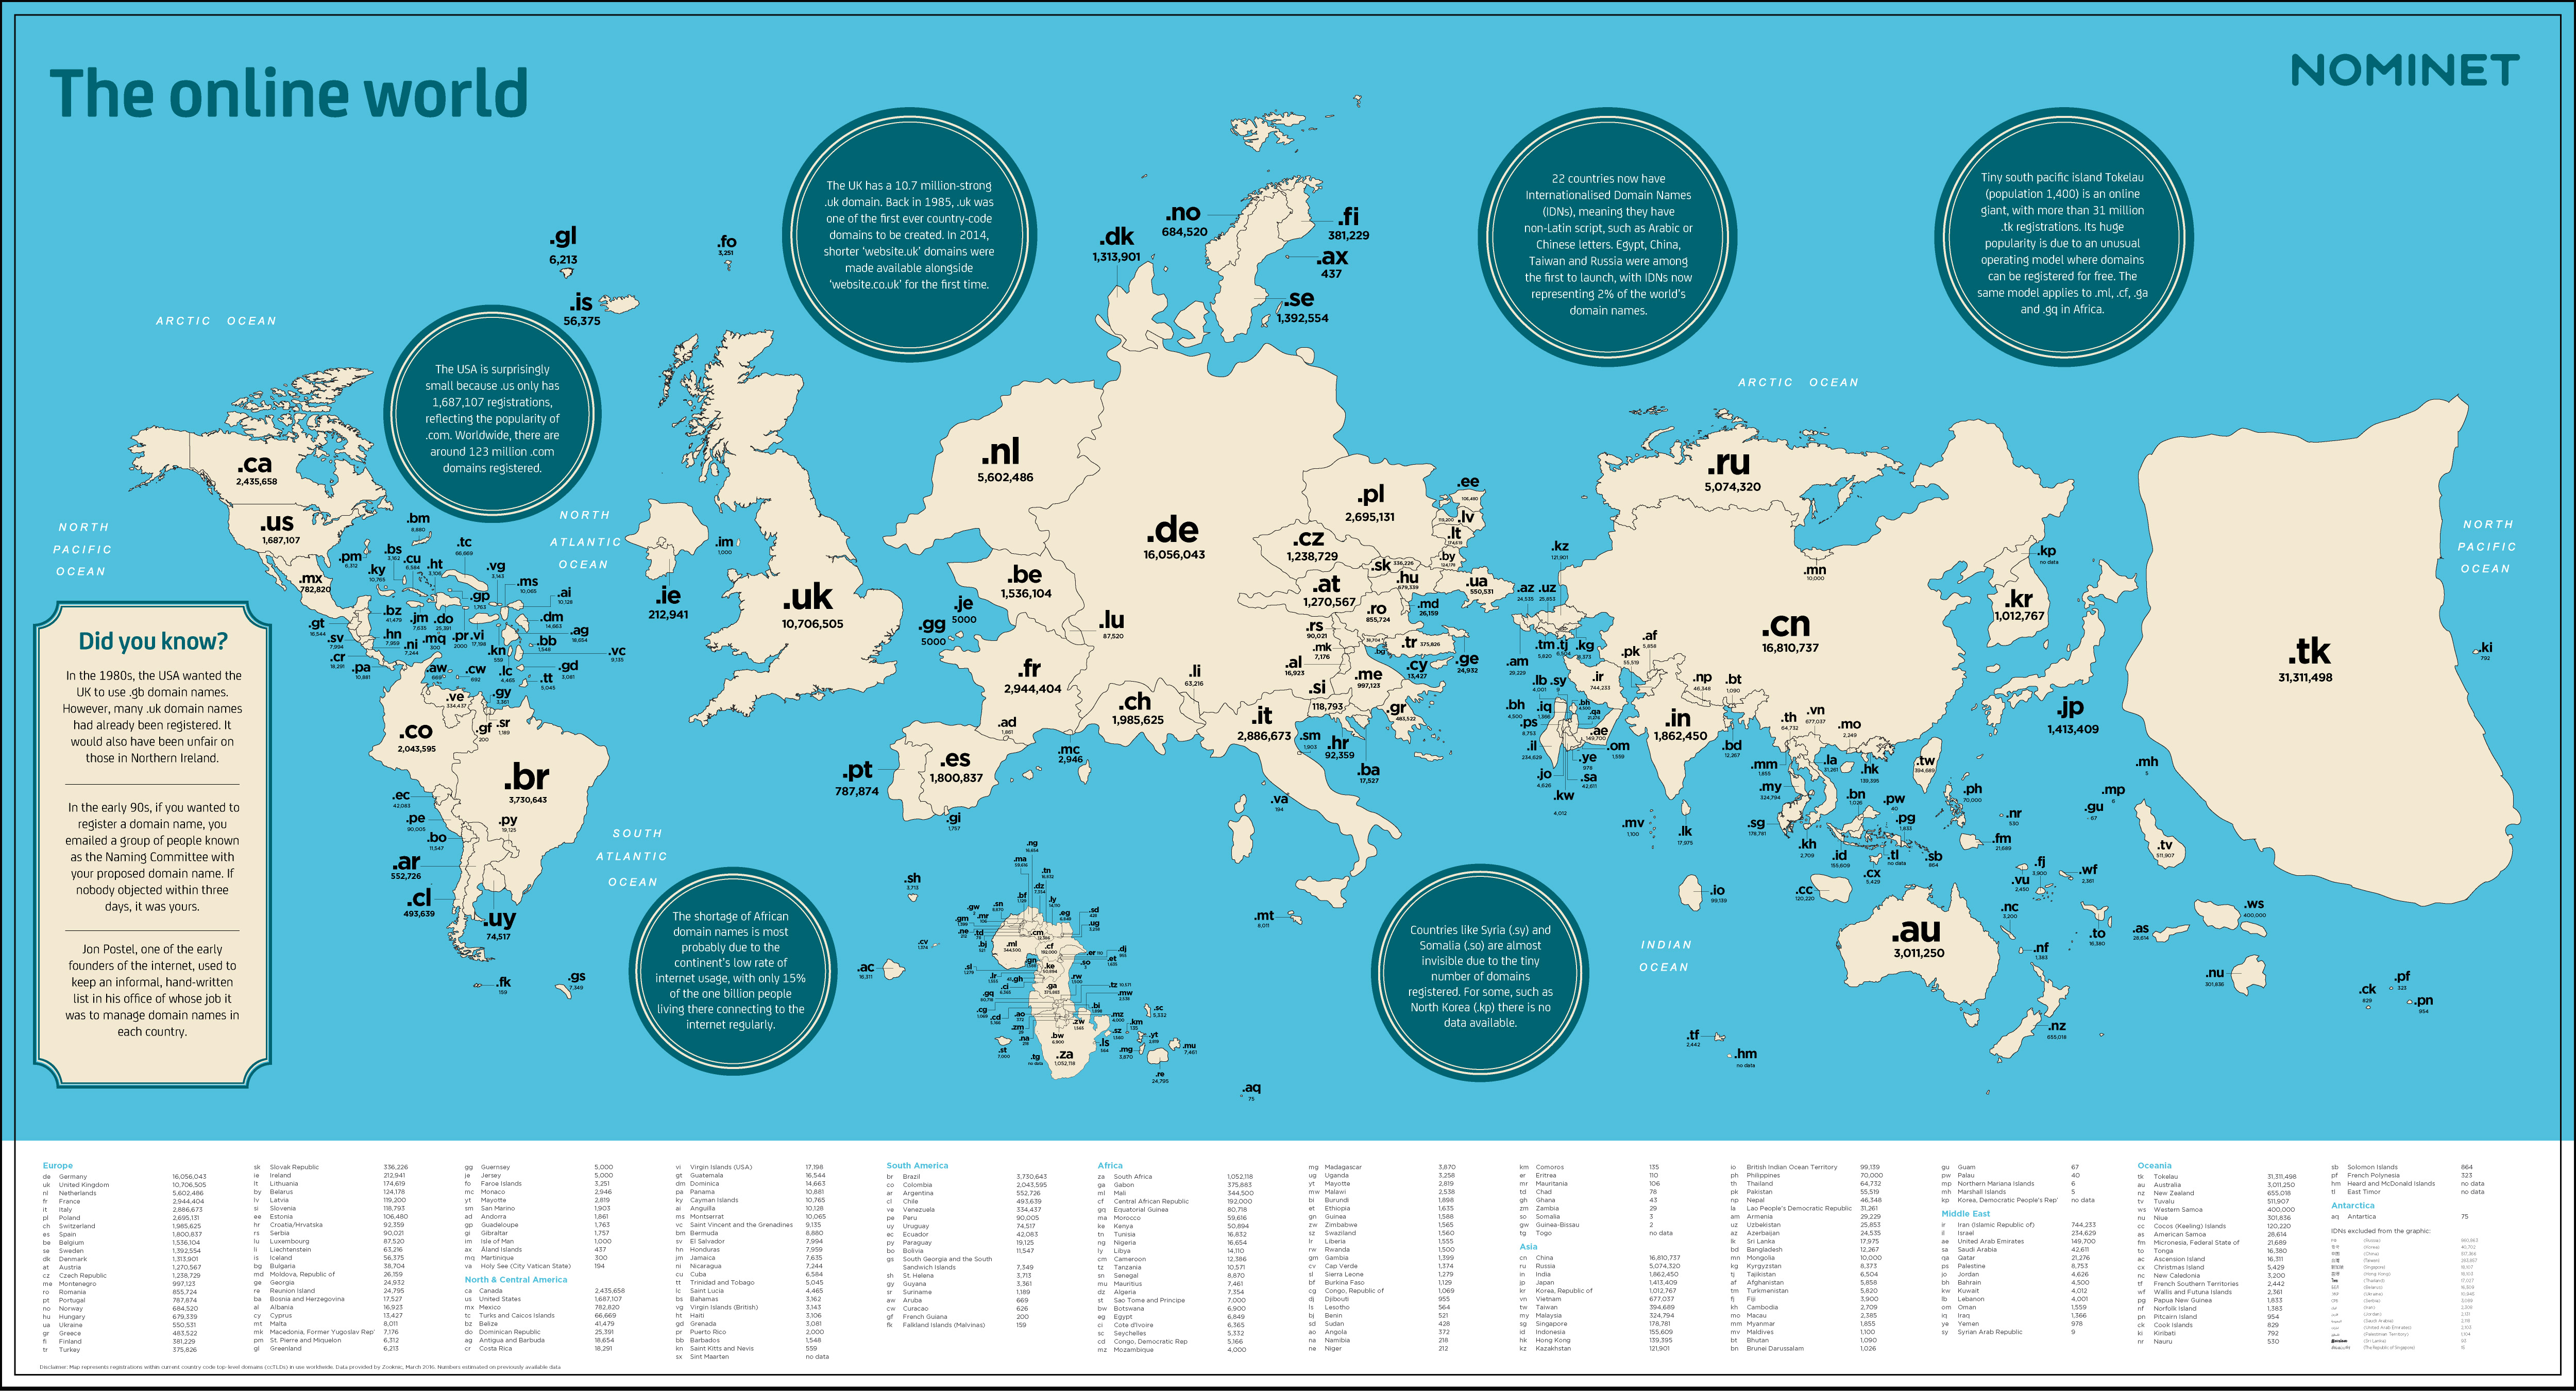 Switzerland timtom map of the countries of the world scaled according to the number of websites registered gumiabroncs Images